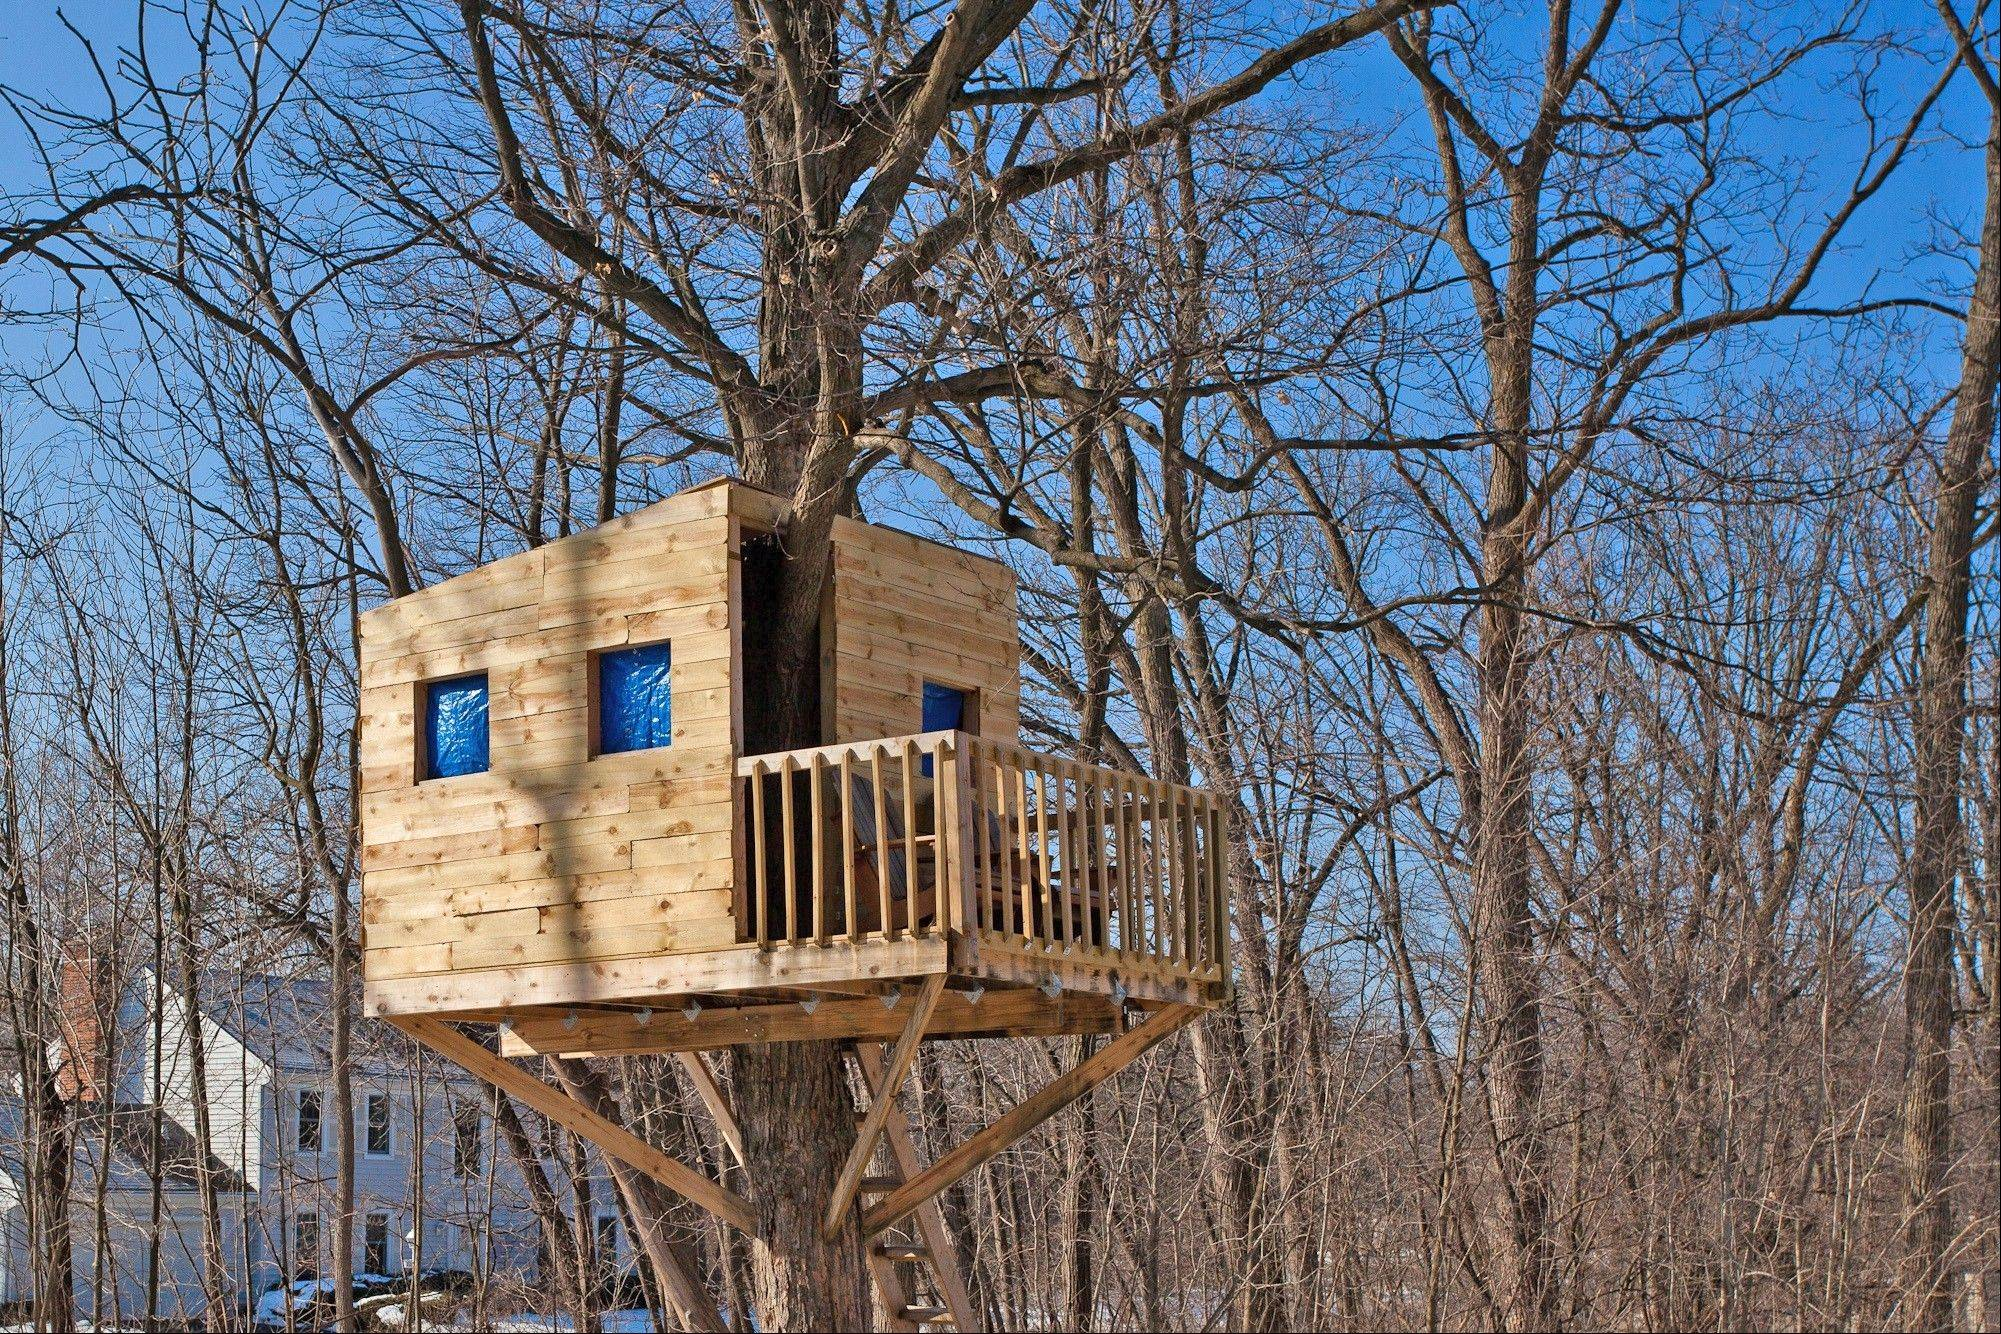 A new treehouse out back was built in one of more than 20 mature trees on the property.